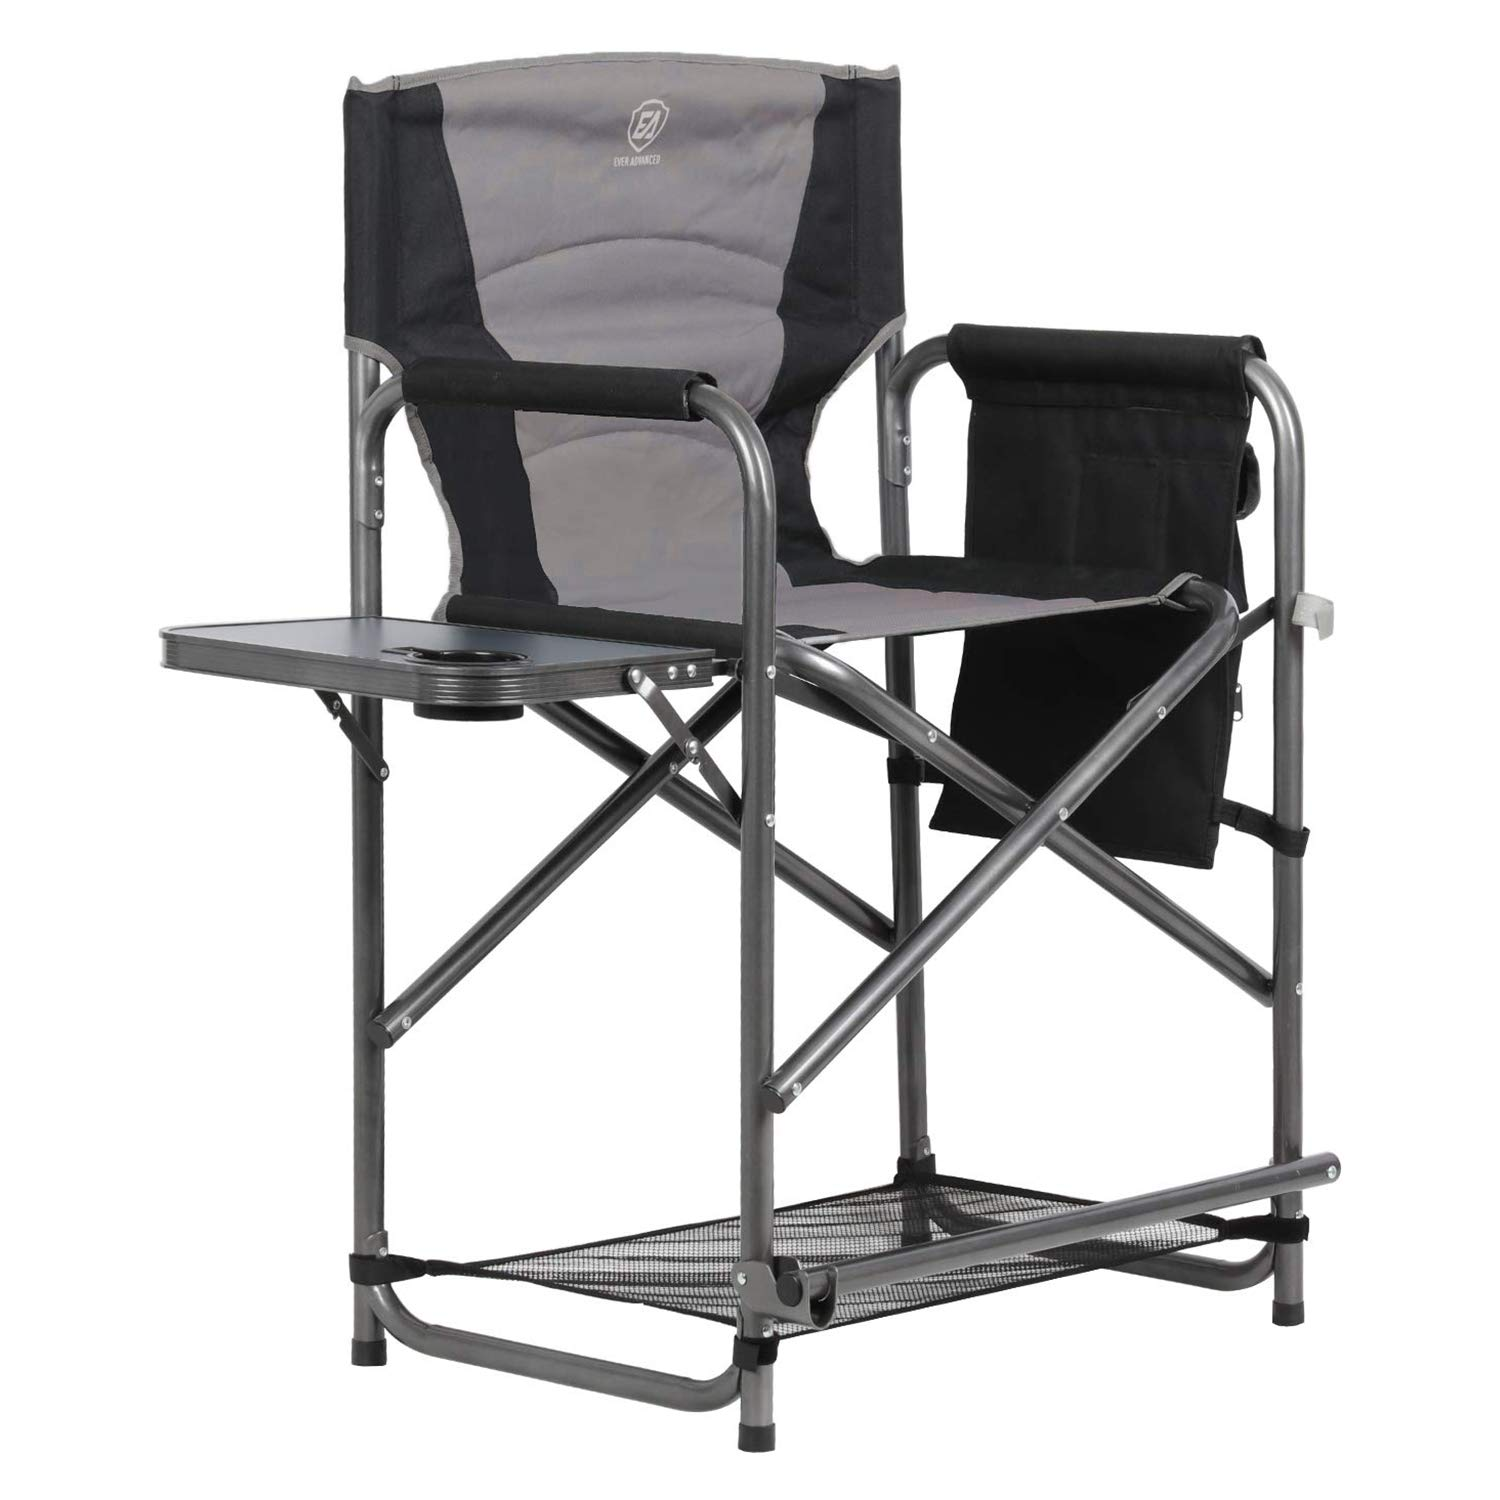 EVER ADVANCED Tall Directors Chair Bar Height Foldable Makeup Artist Chair with Side Table Cup Holder Side Storage Bag Footrest, Supports 300LBS by EVER ADVANCED